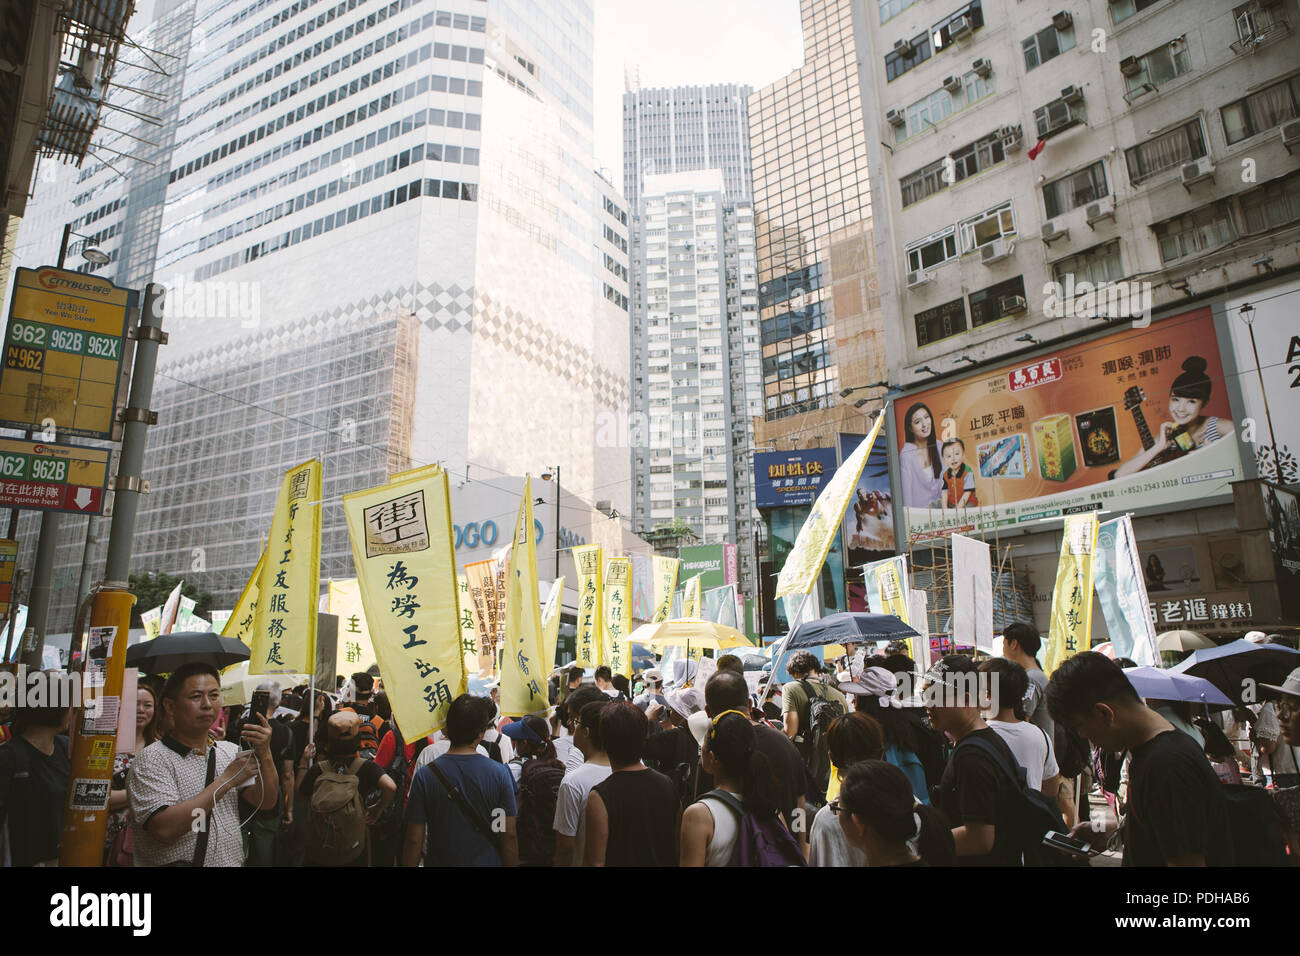 July 1, 2017 - Hong Kong, Hong Kong - People seen holding posters during the protest..Thousands came together and demonstrated to mark the 20th anniversary of the Handover from Britain to China, Hong Kong's return to China on July 1st 1997. The protestors marched through sun and rain from Victoria Park to Admiralty, taking a stand on a variety of human-rights-related causes. (Credit Image: © Viola Gaskell/SOPA Images via ZUMA Wire) - Stock Image